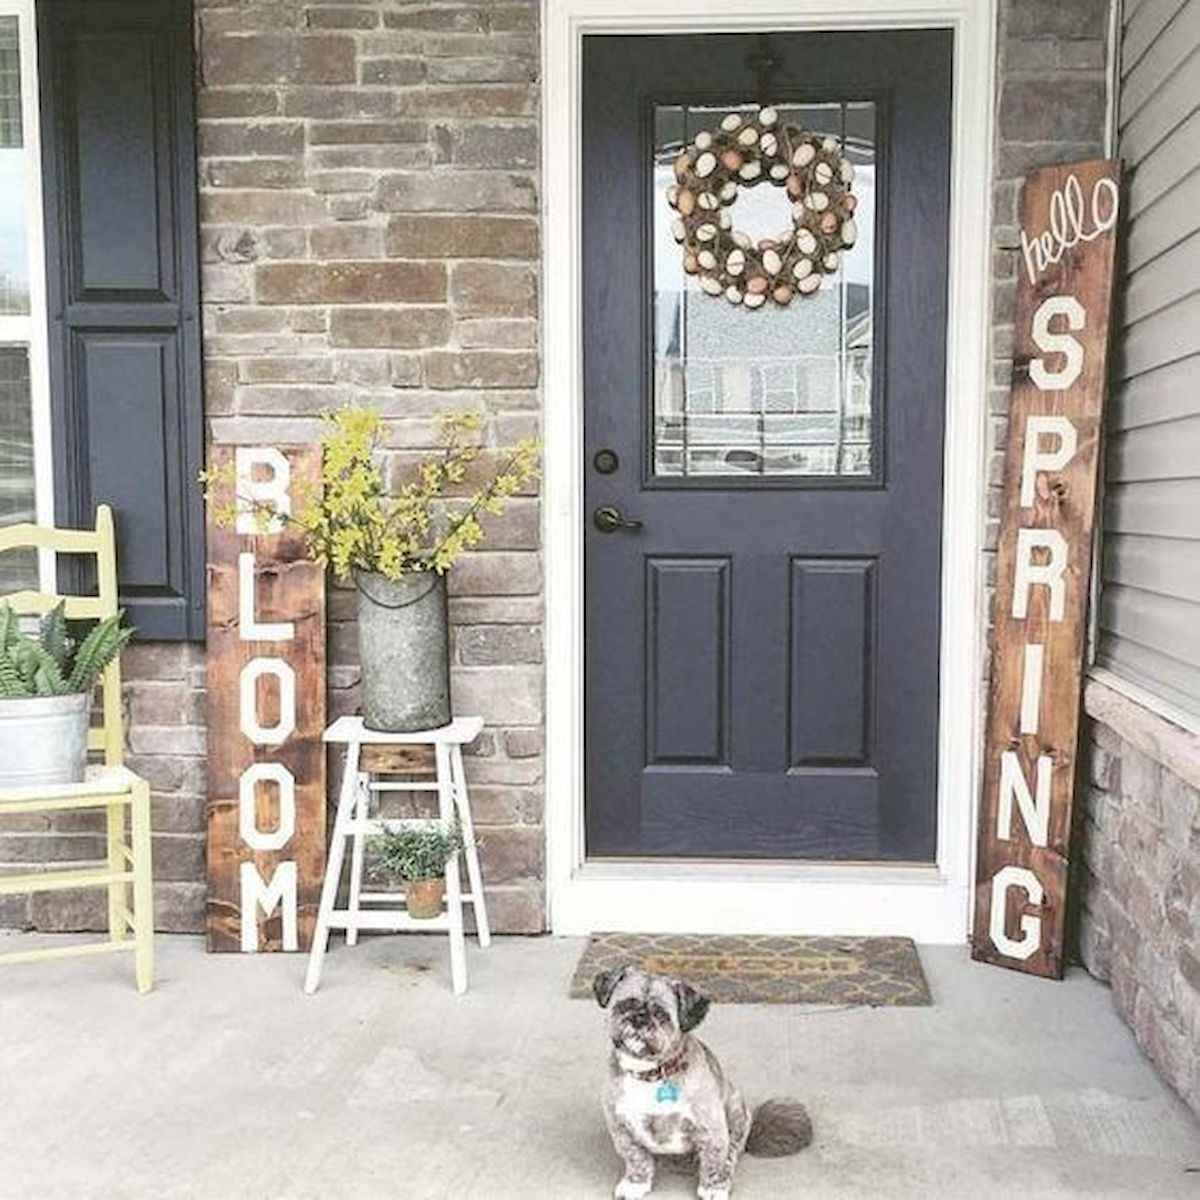 30 Rustic Decorations Ideas for Spring (12)